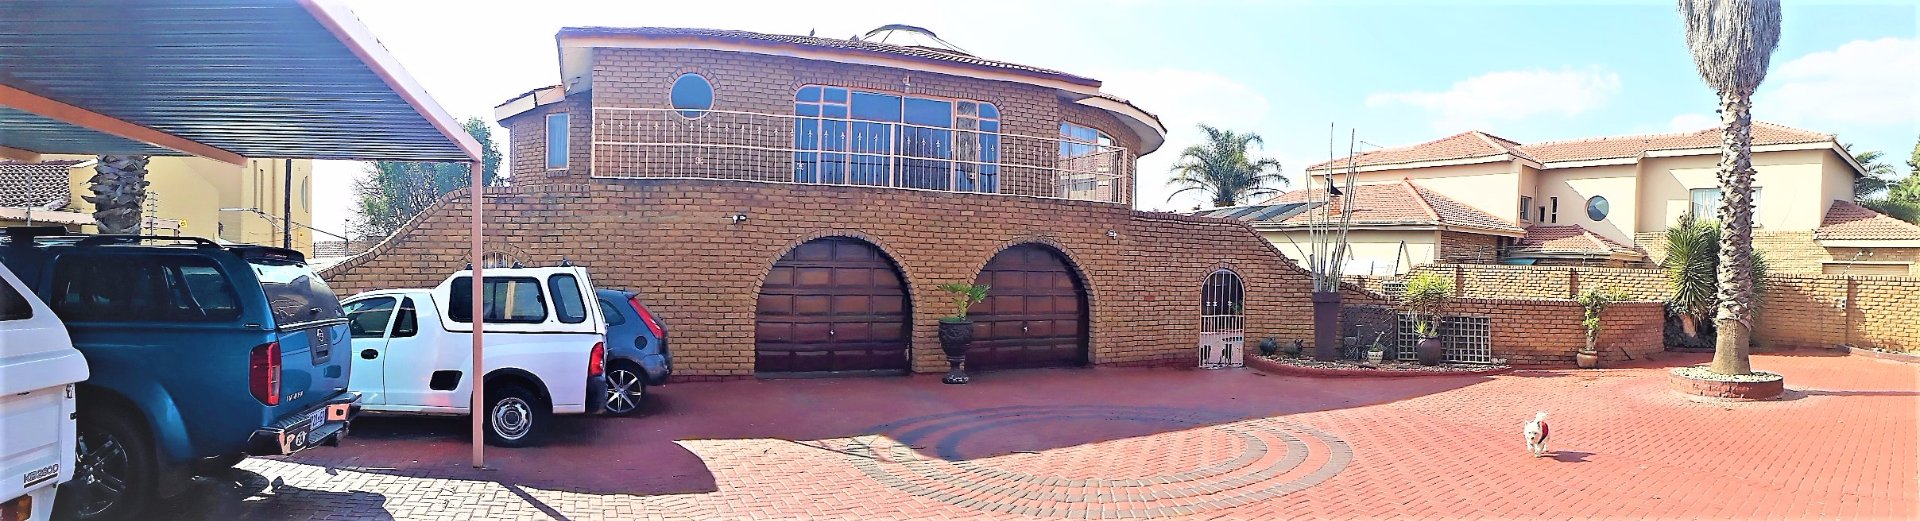 Randfontein, Culemborgpark Property  | Houses For Sale Culemborgpark, Culemborgpark, House 6 bedrooms property for sale Price:2,100,000